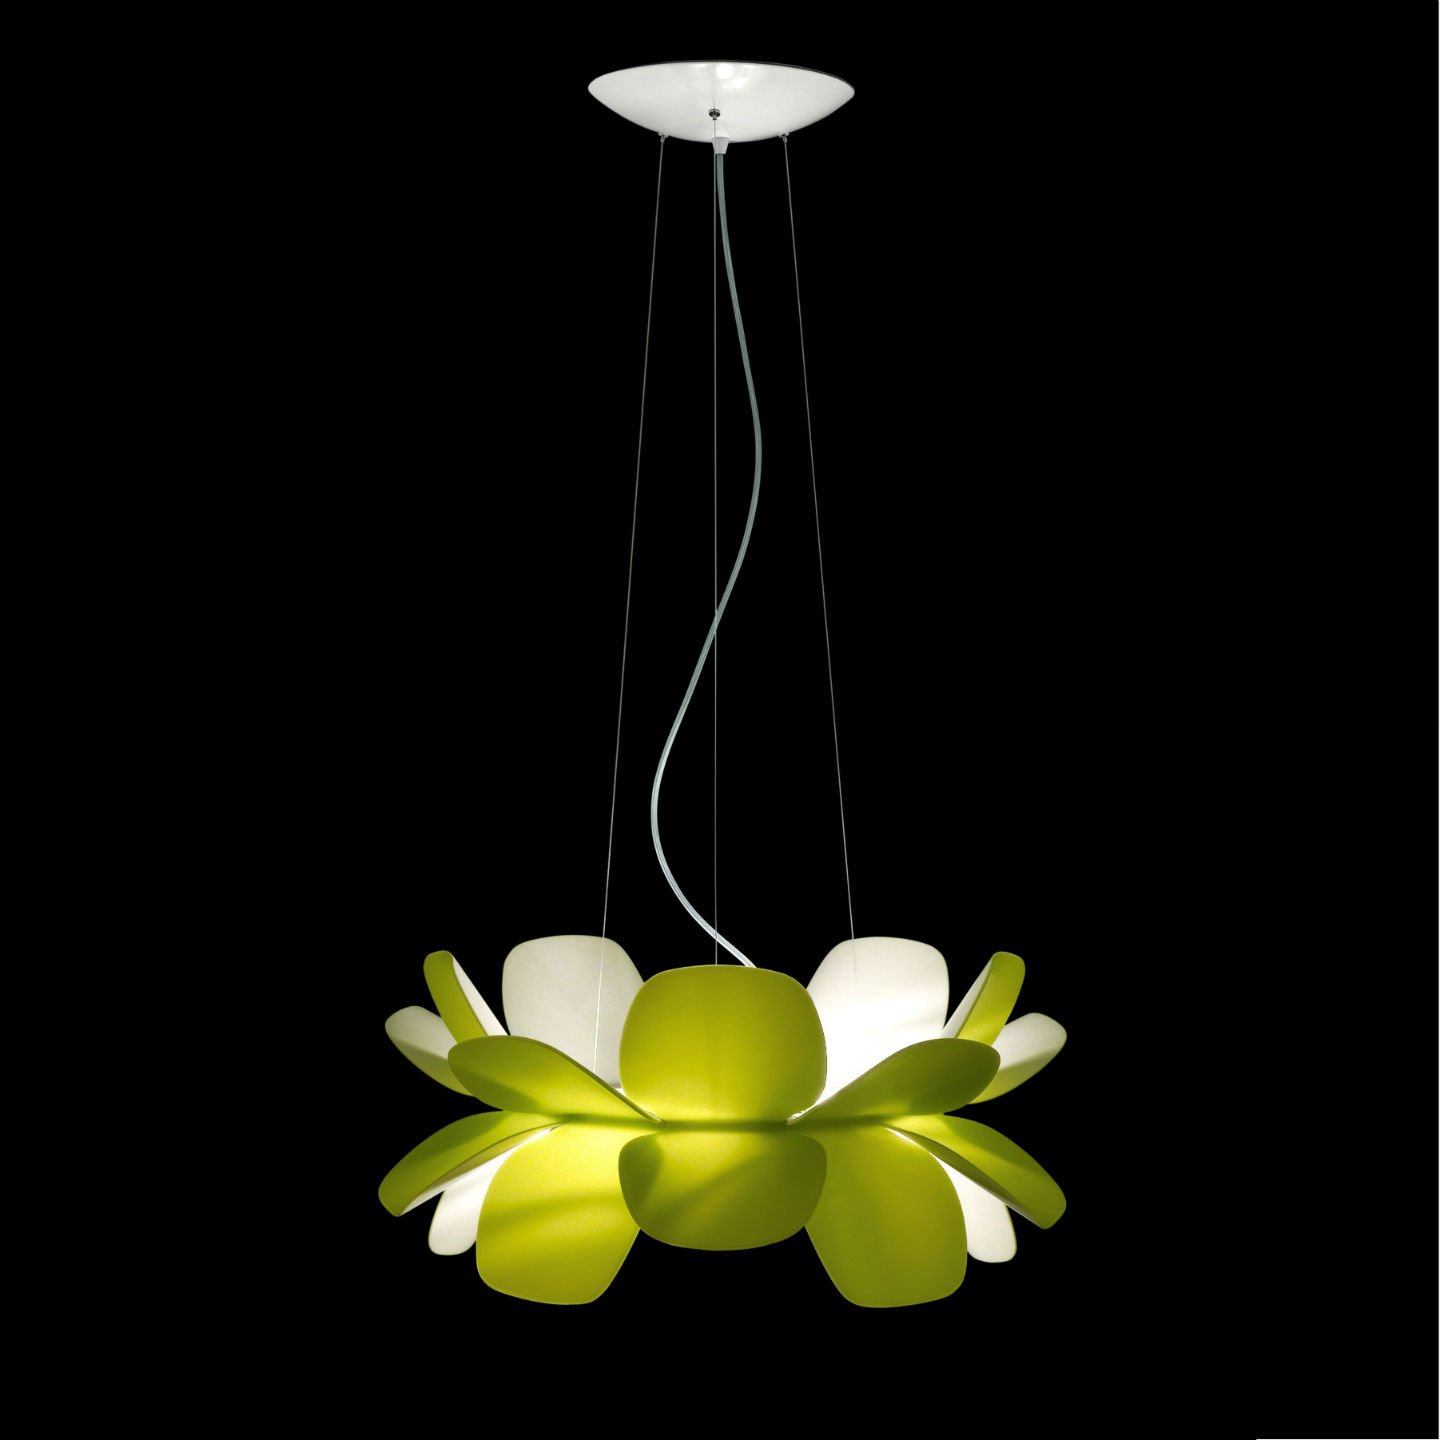 Infiore T 5805 Pendant Lamp ECO 120W Grey